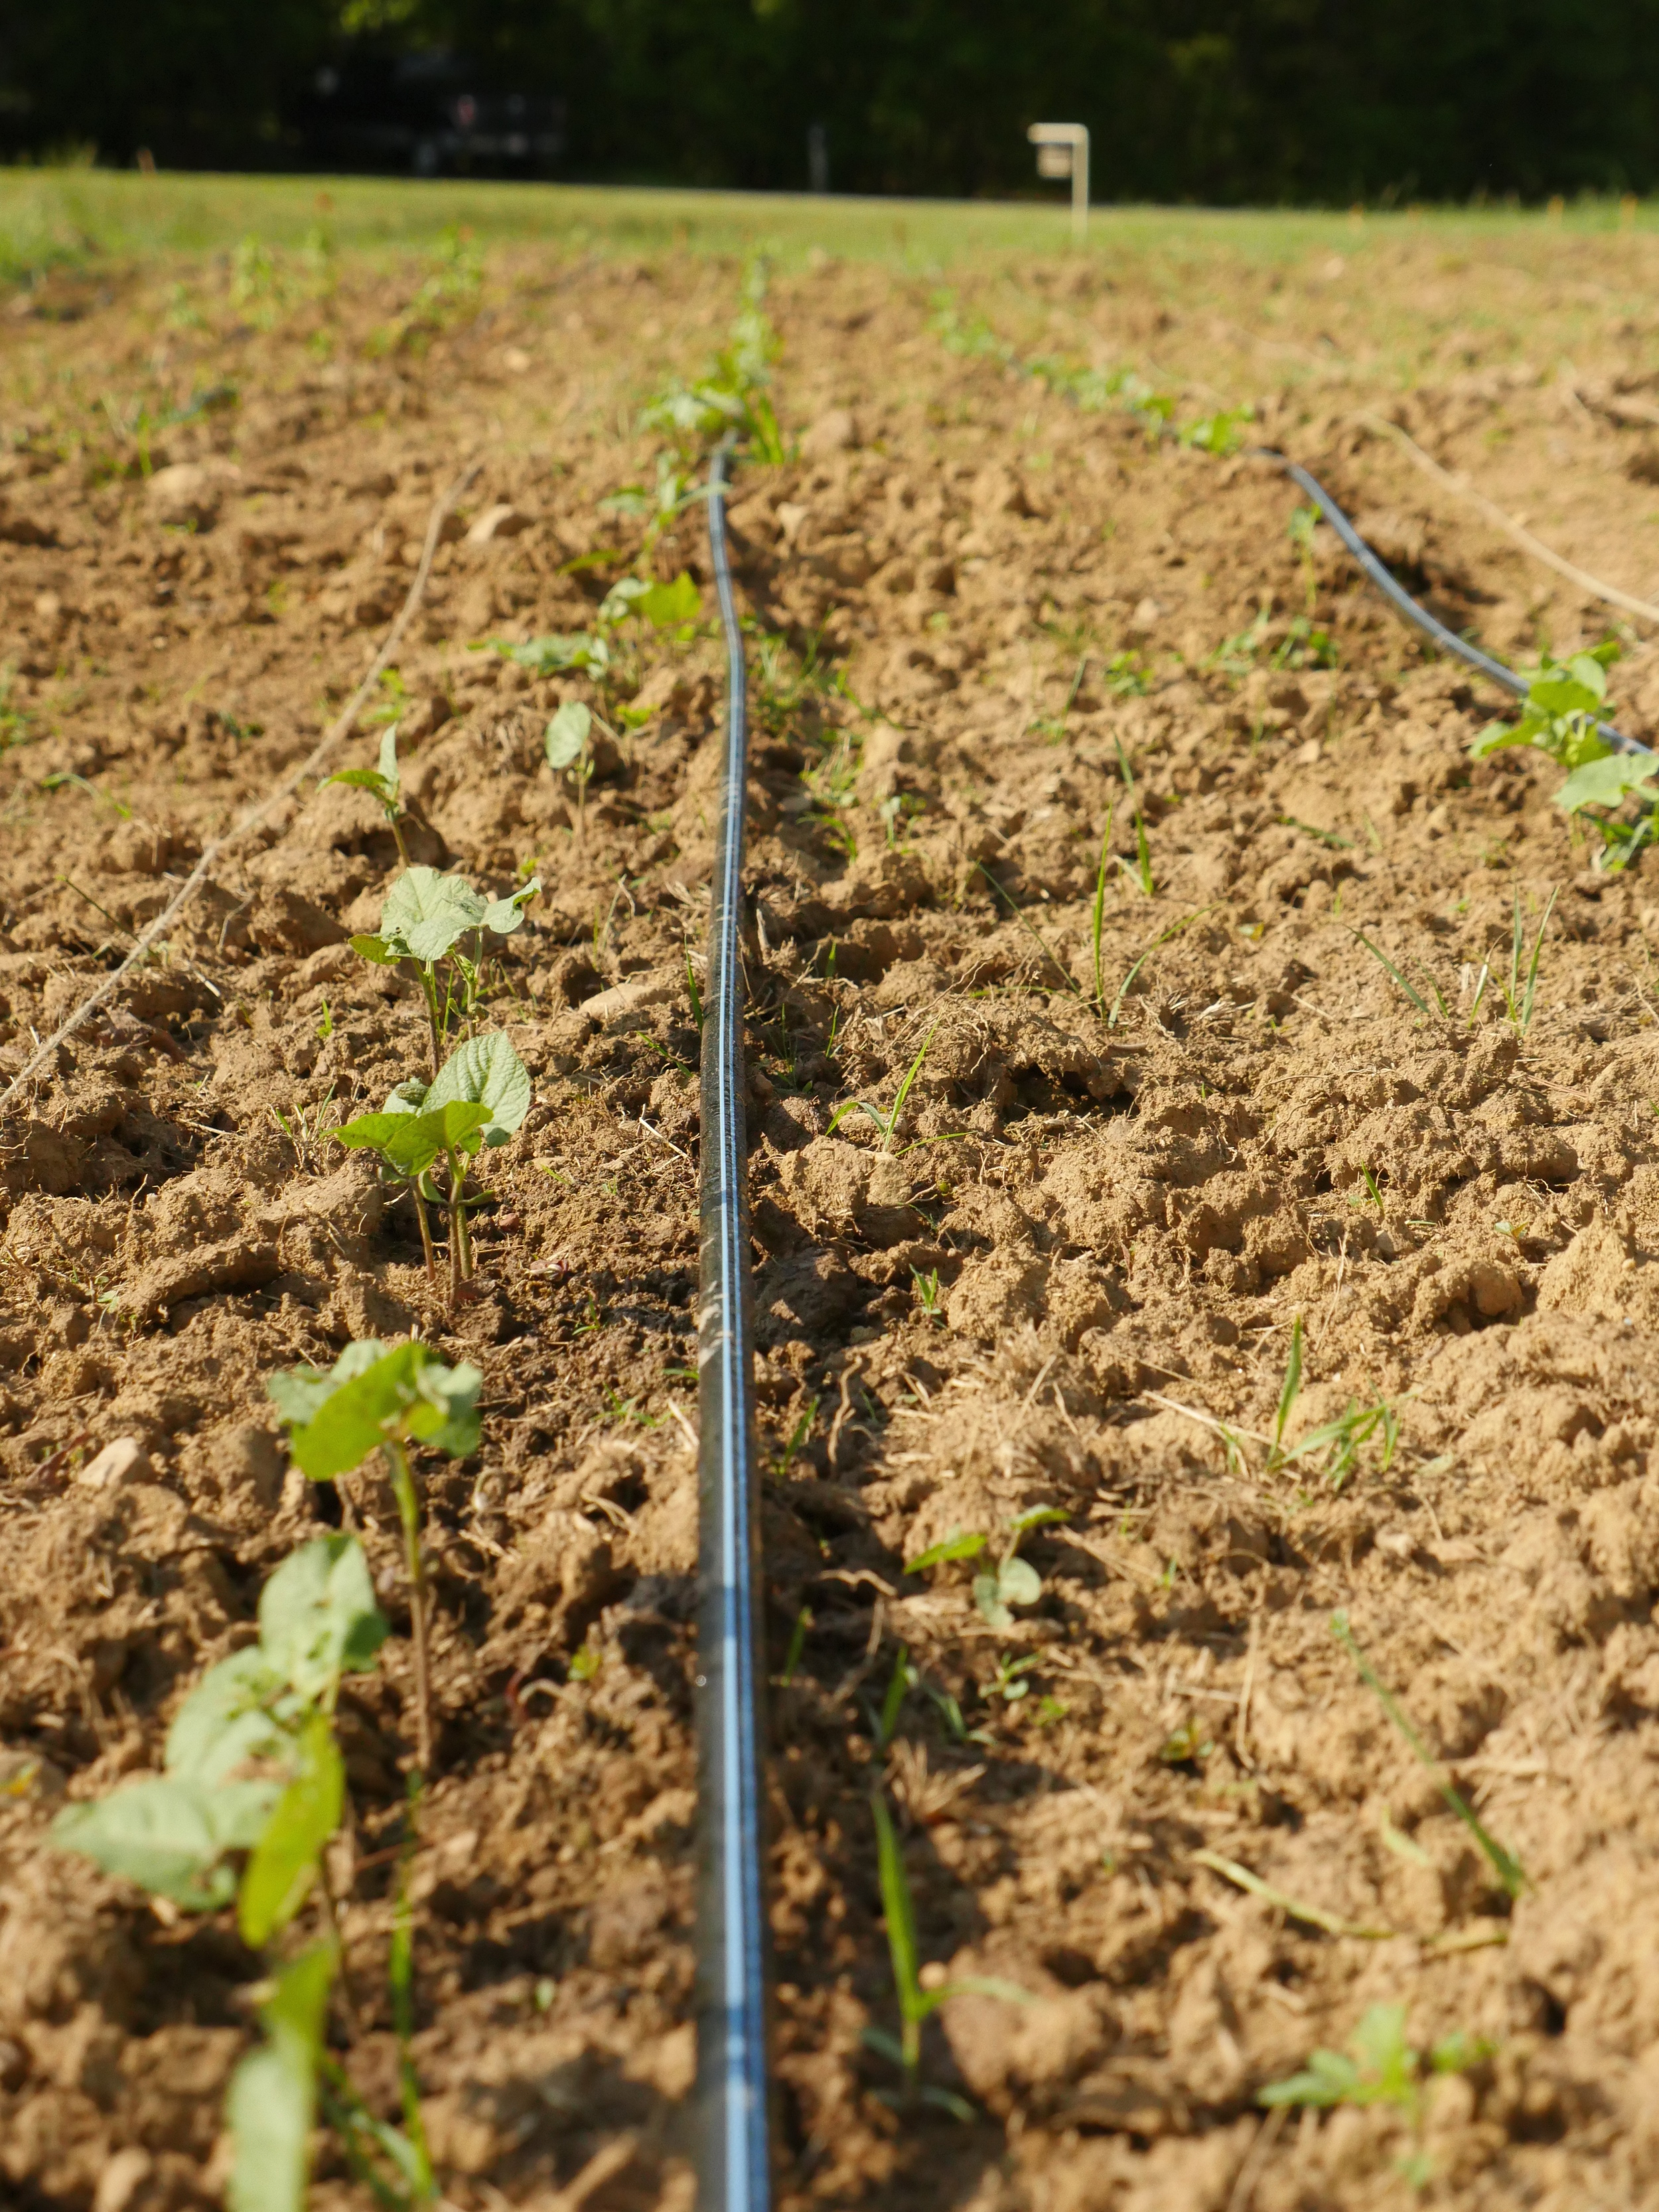 Beans germinating along the drip irrigation.